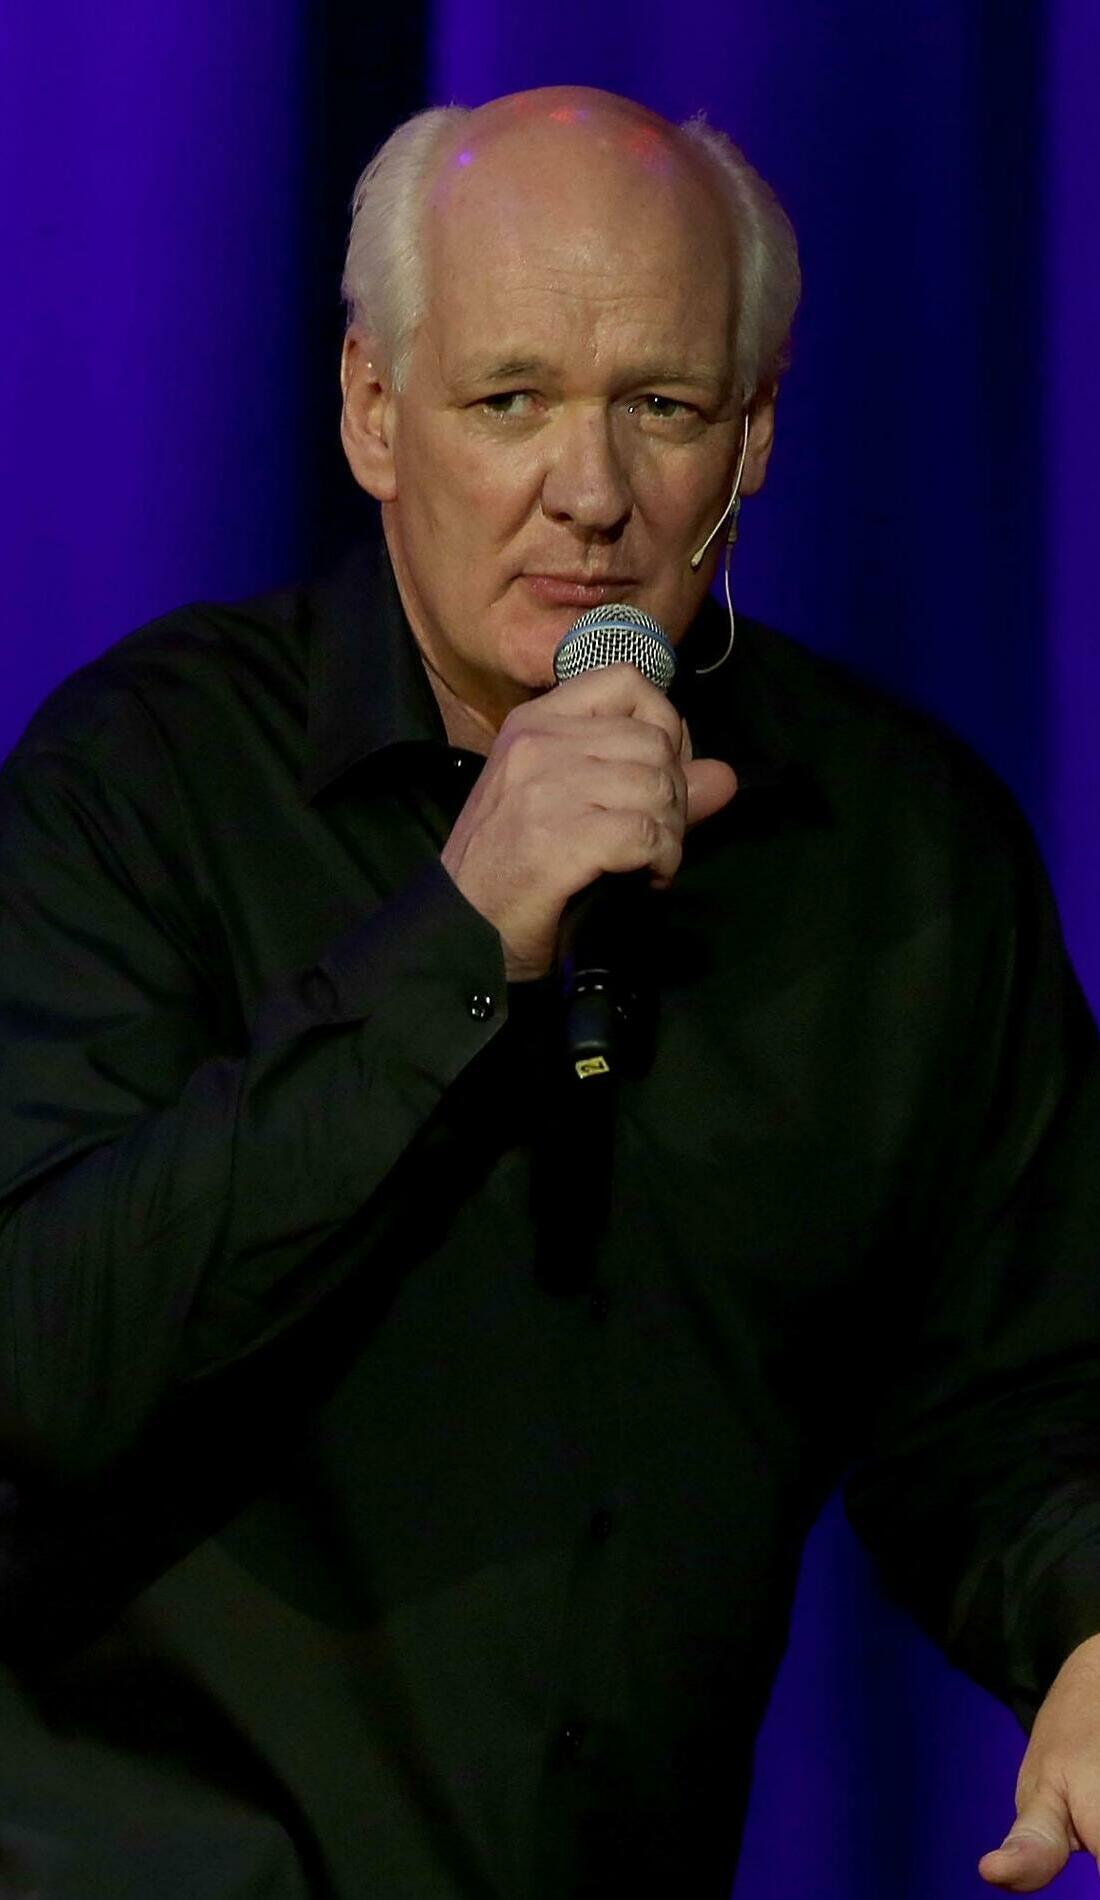 A Colin Mochrie live event